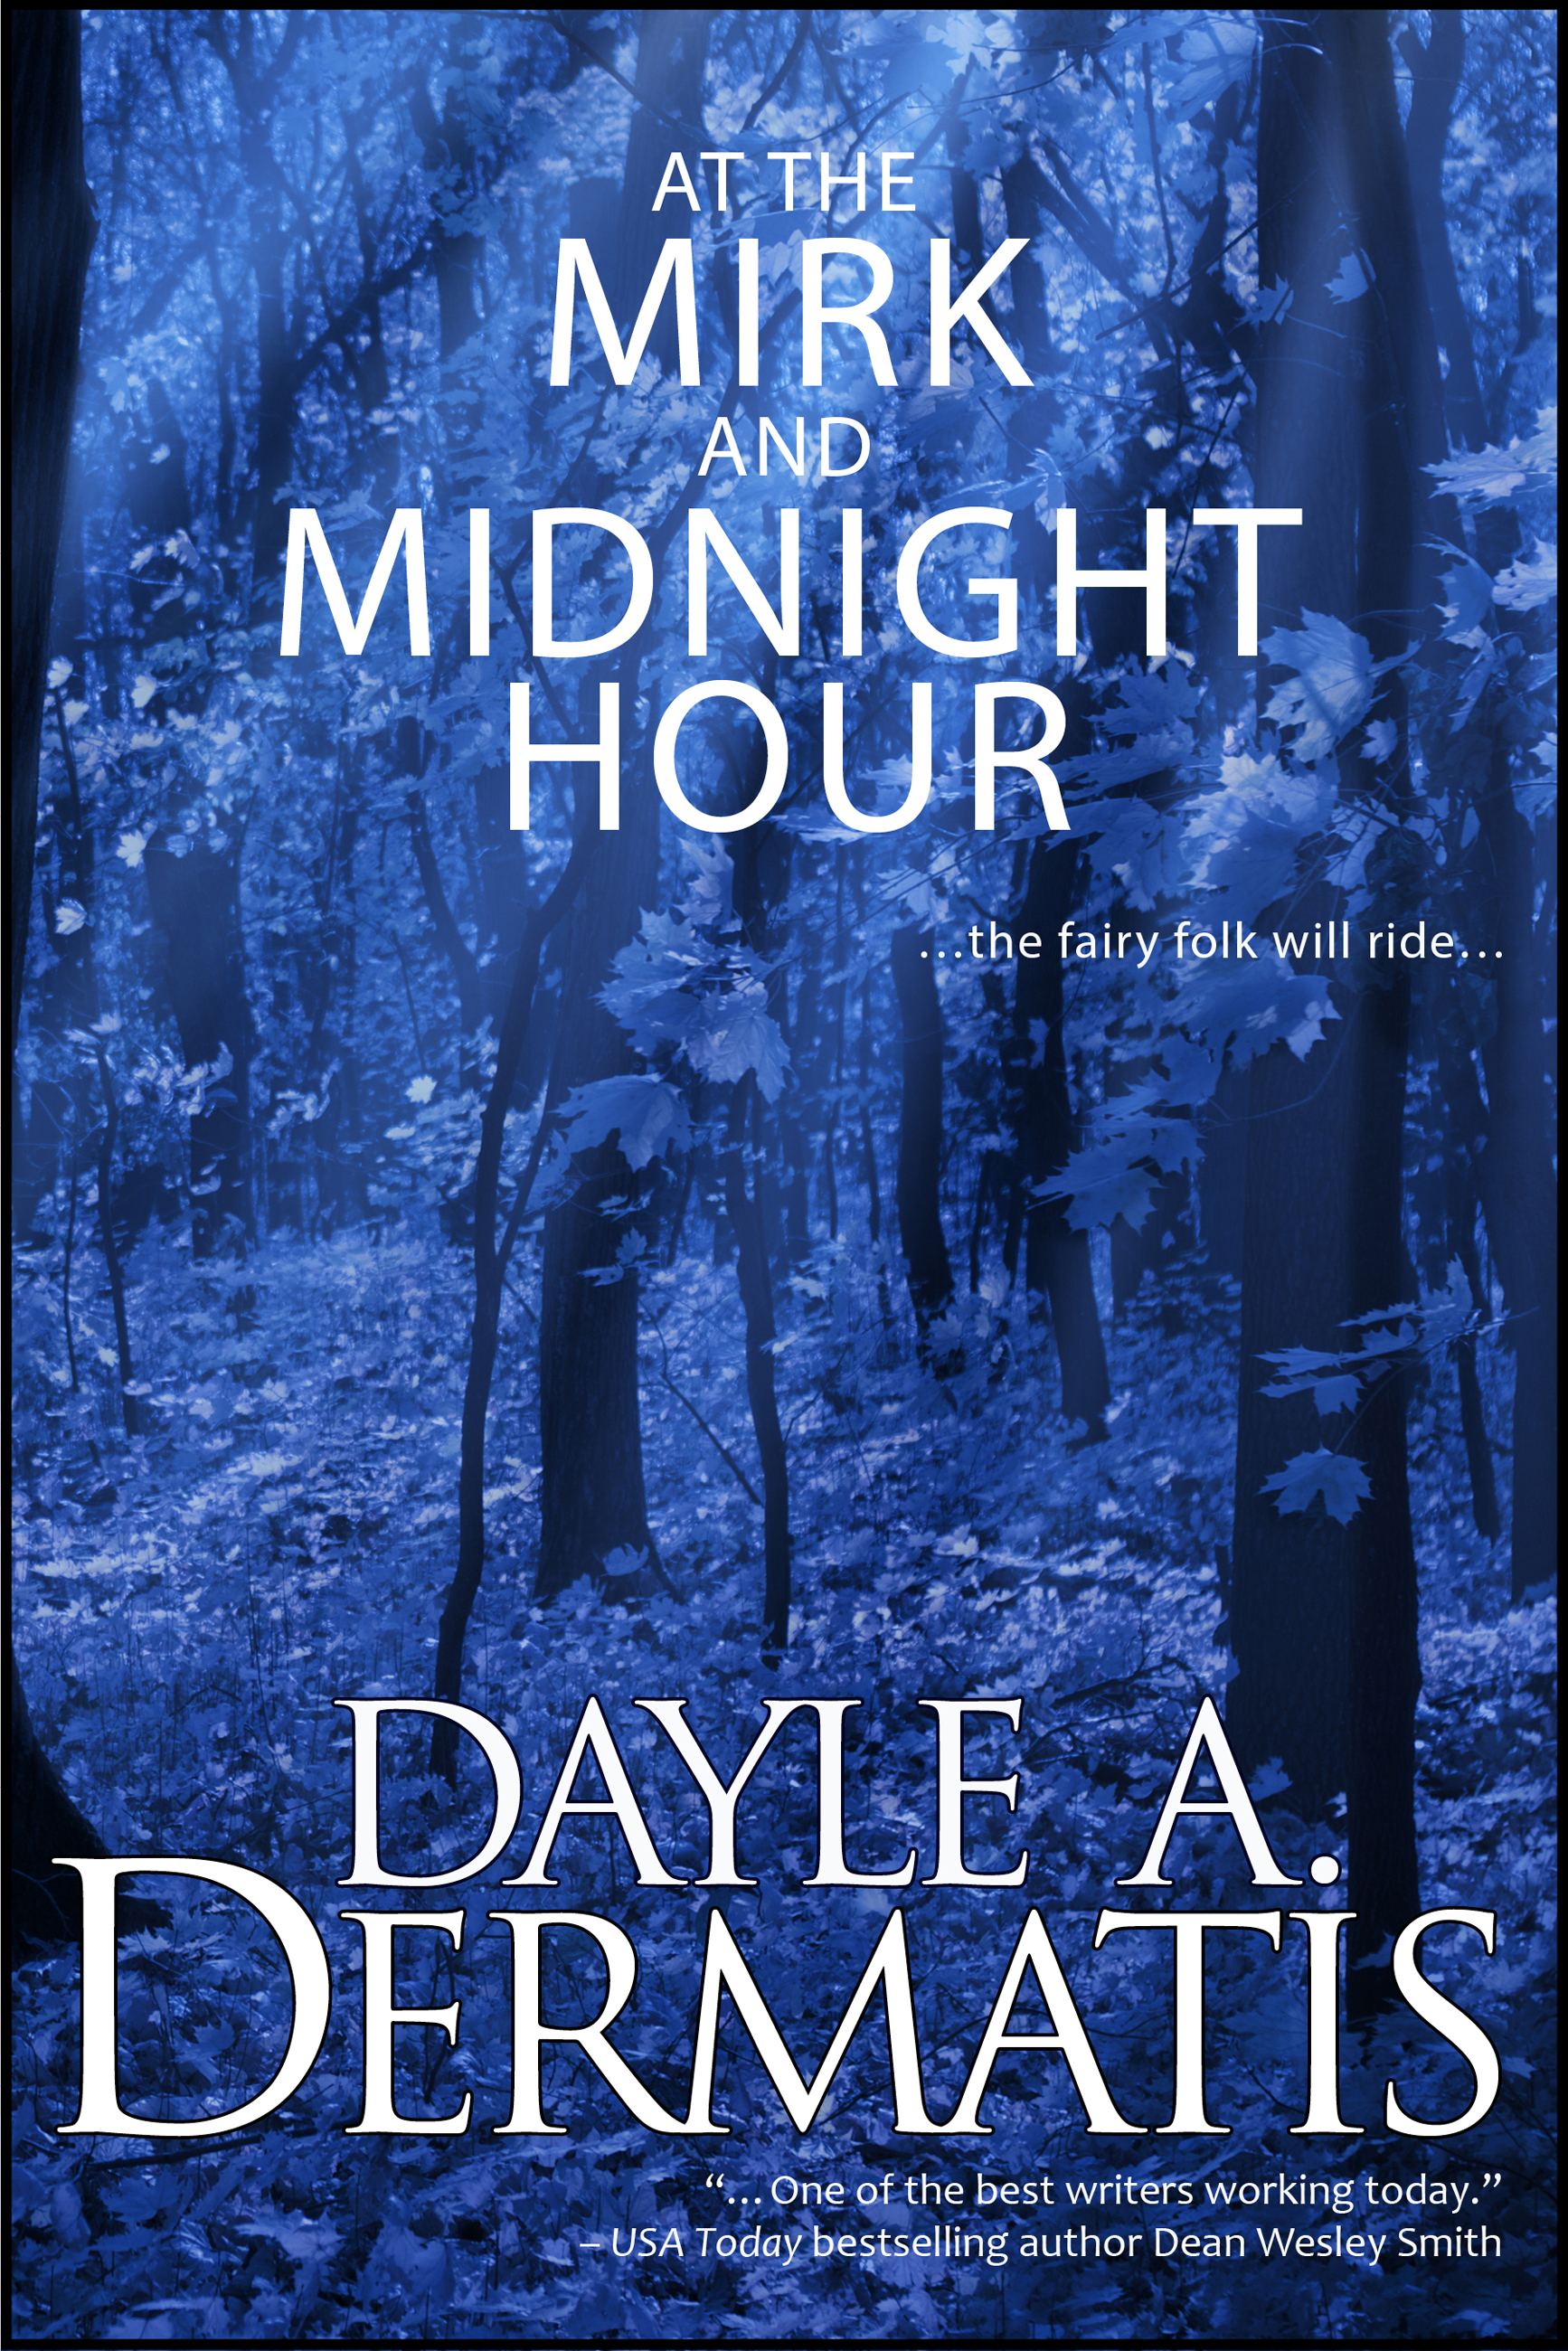 At the Mirk and Midnight Hour  by  Dayle A. Dermatis